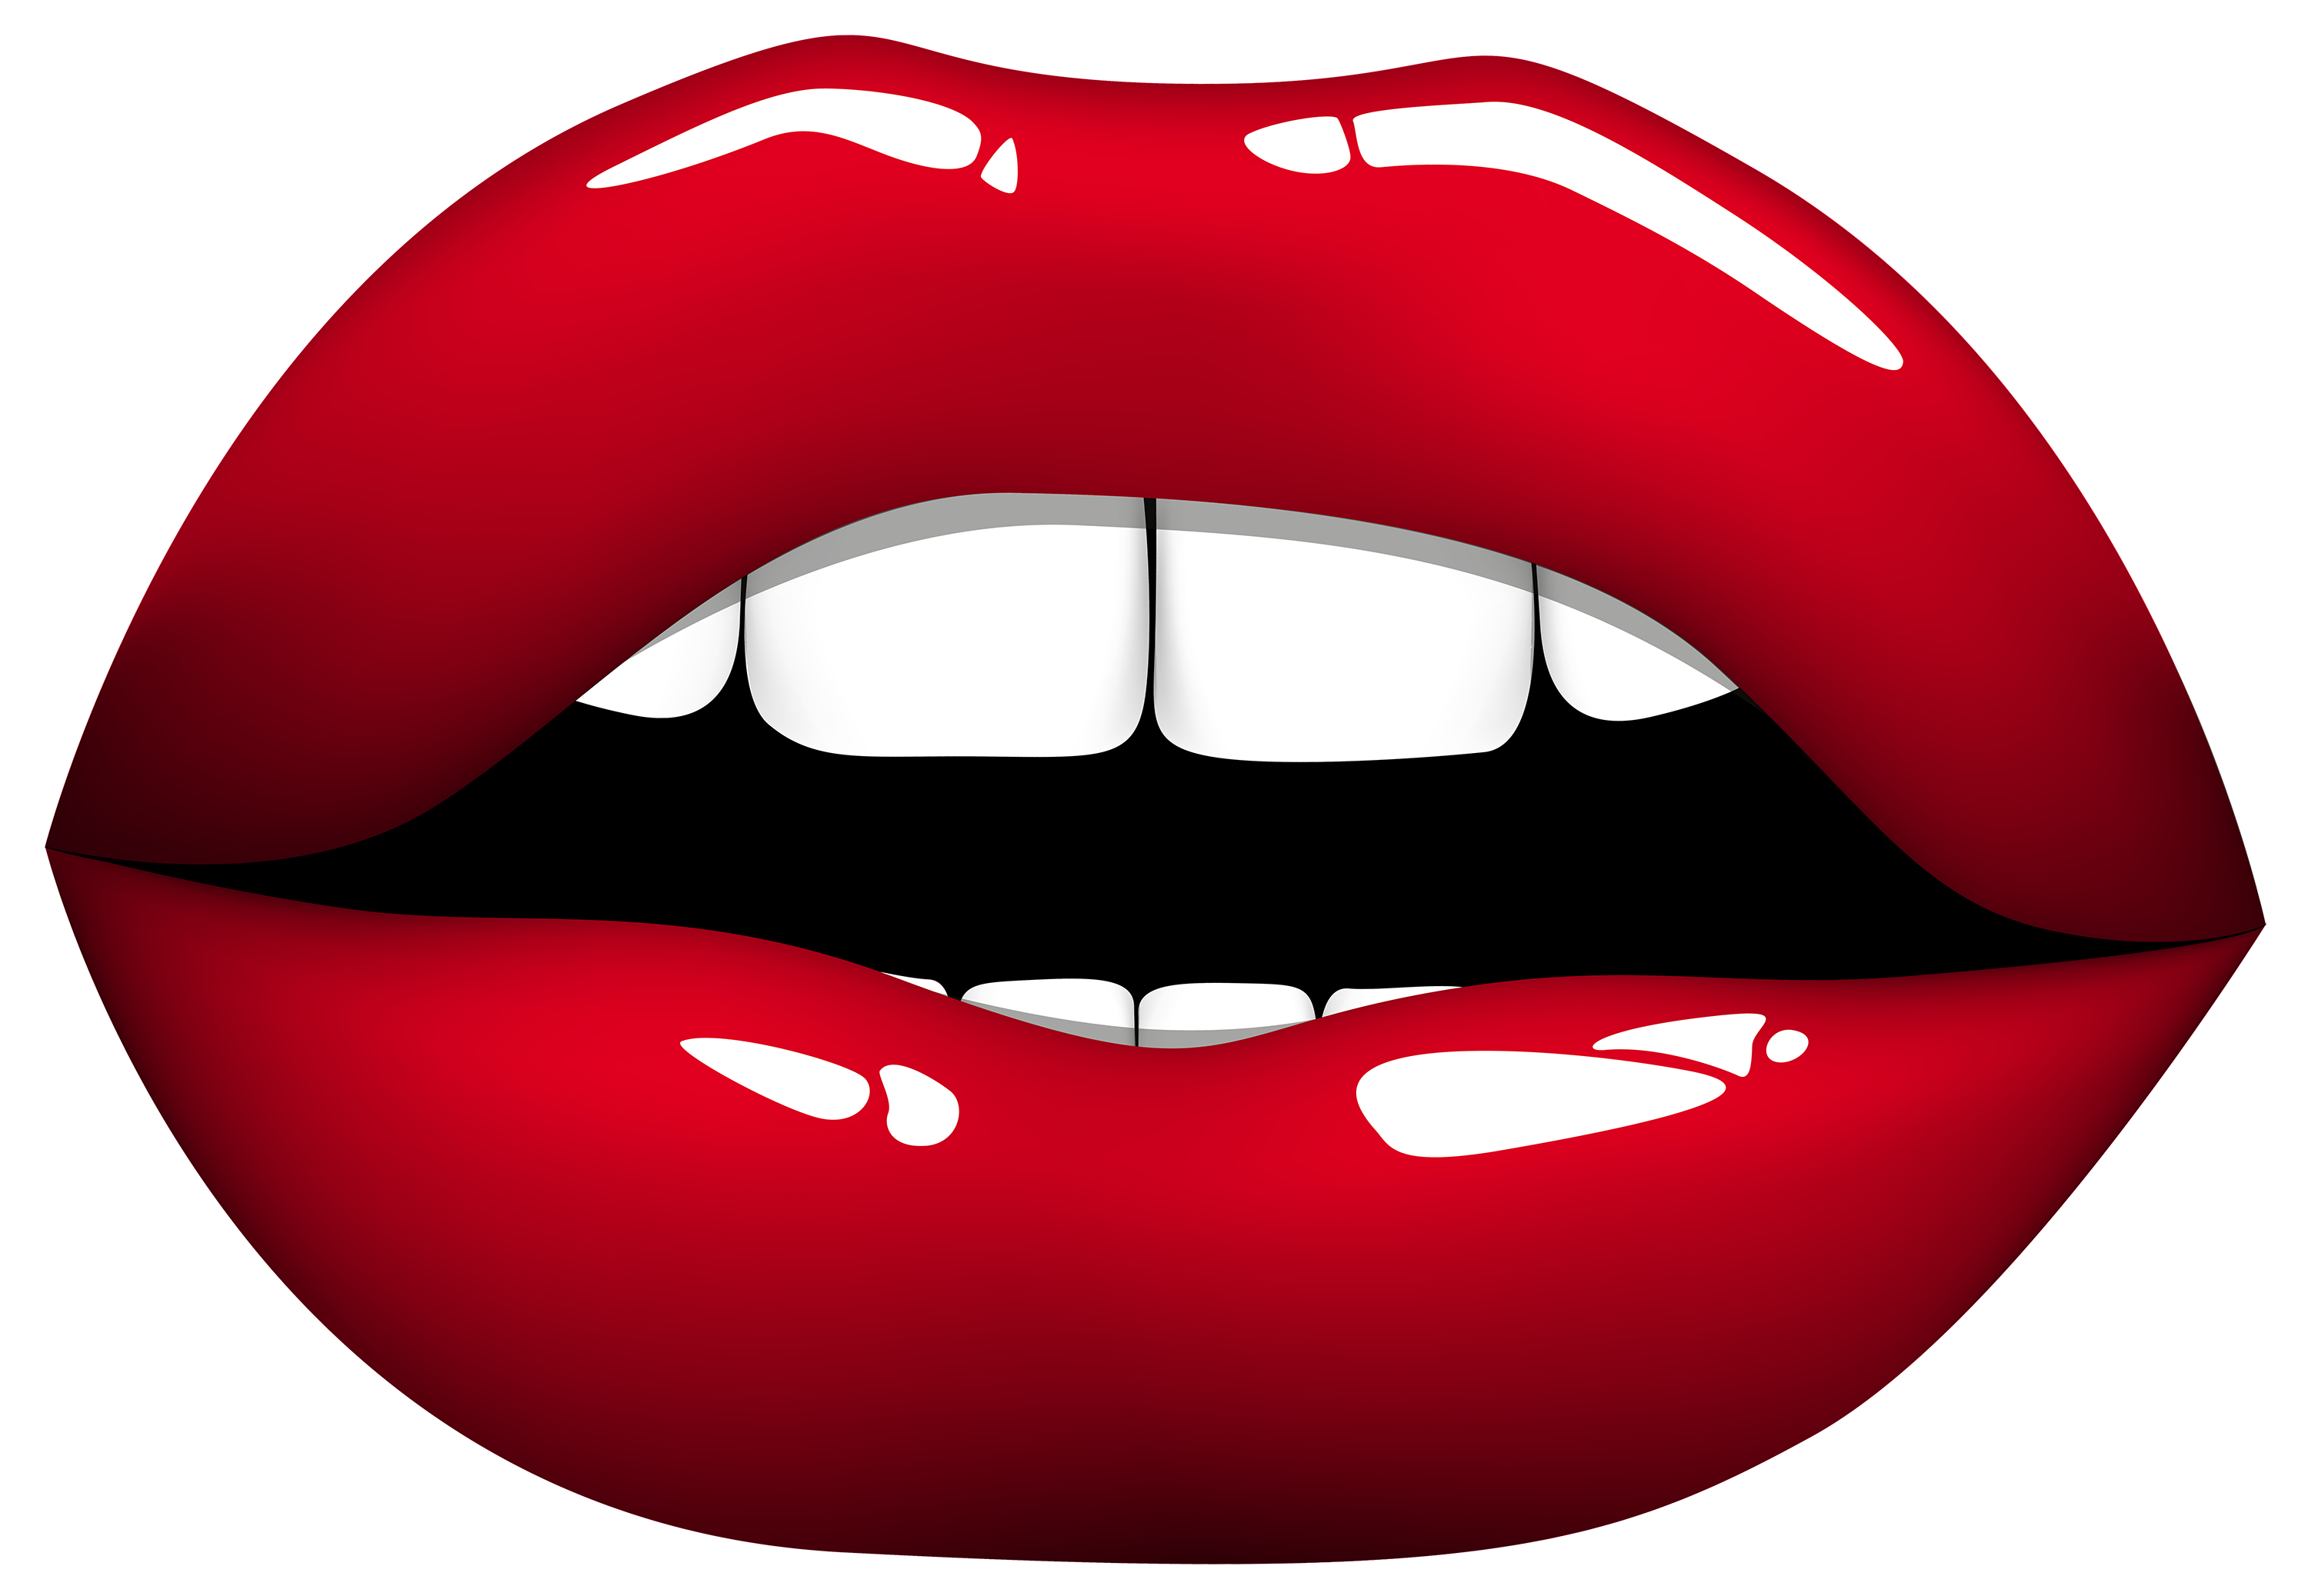 Red lips png best. Chin clipart transparent png free library